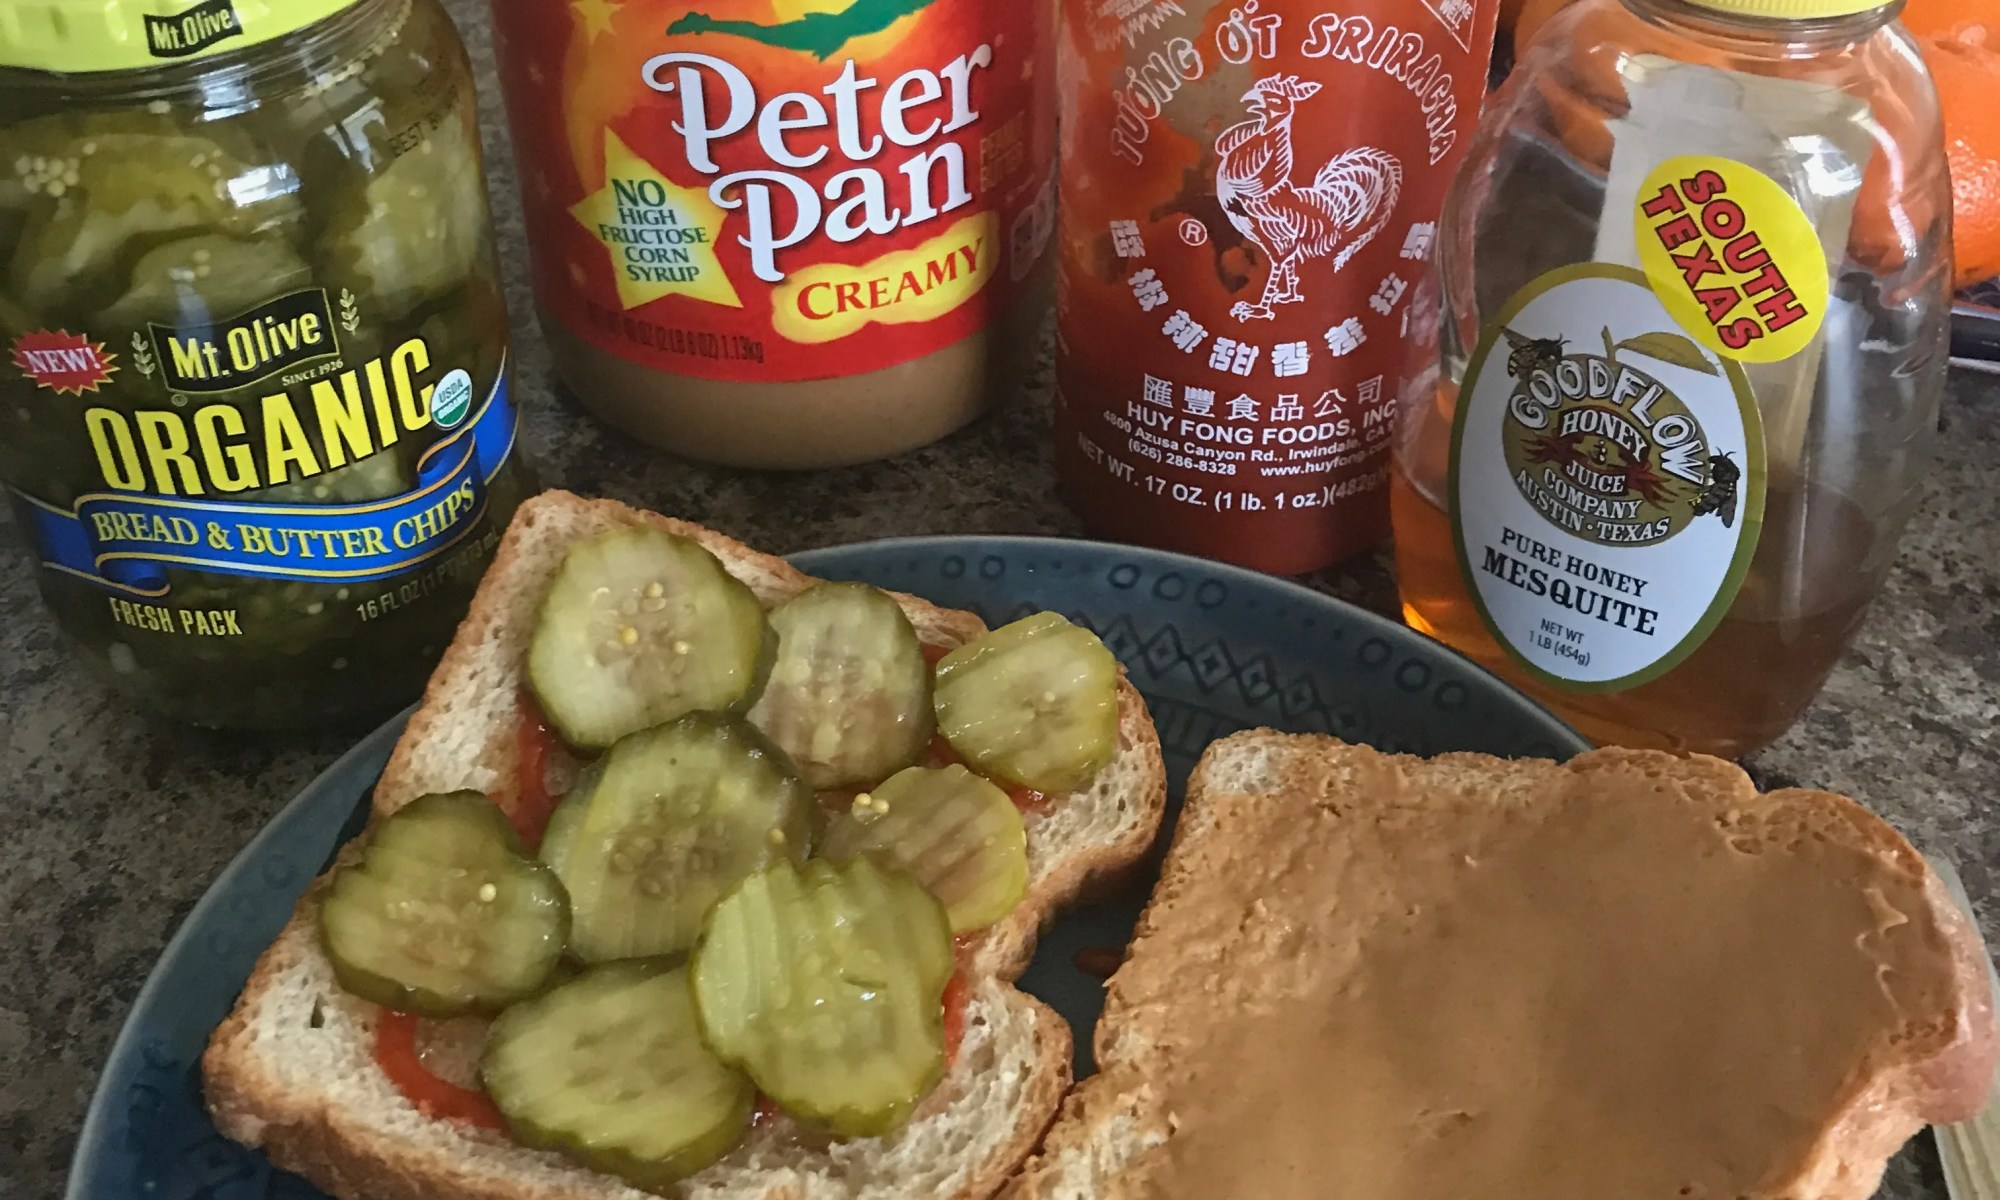 jar of bread n butter pickles, peanut butter, sirarcha, honey, two pieces of bread one spread with peanut butter the other pickles with honey and sirarcha on a blue plate.